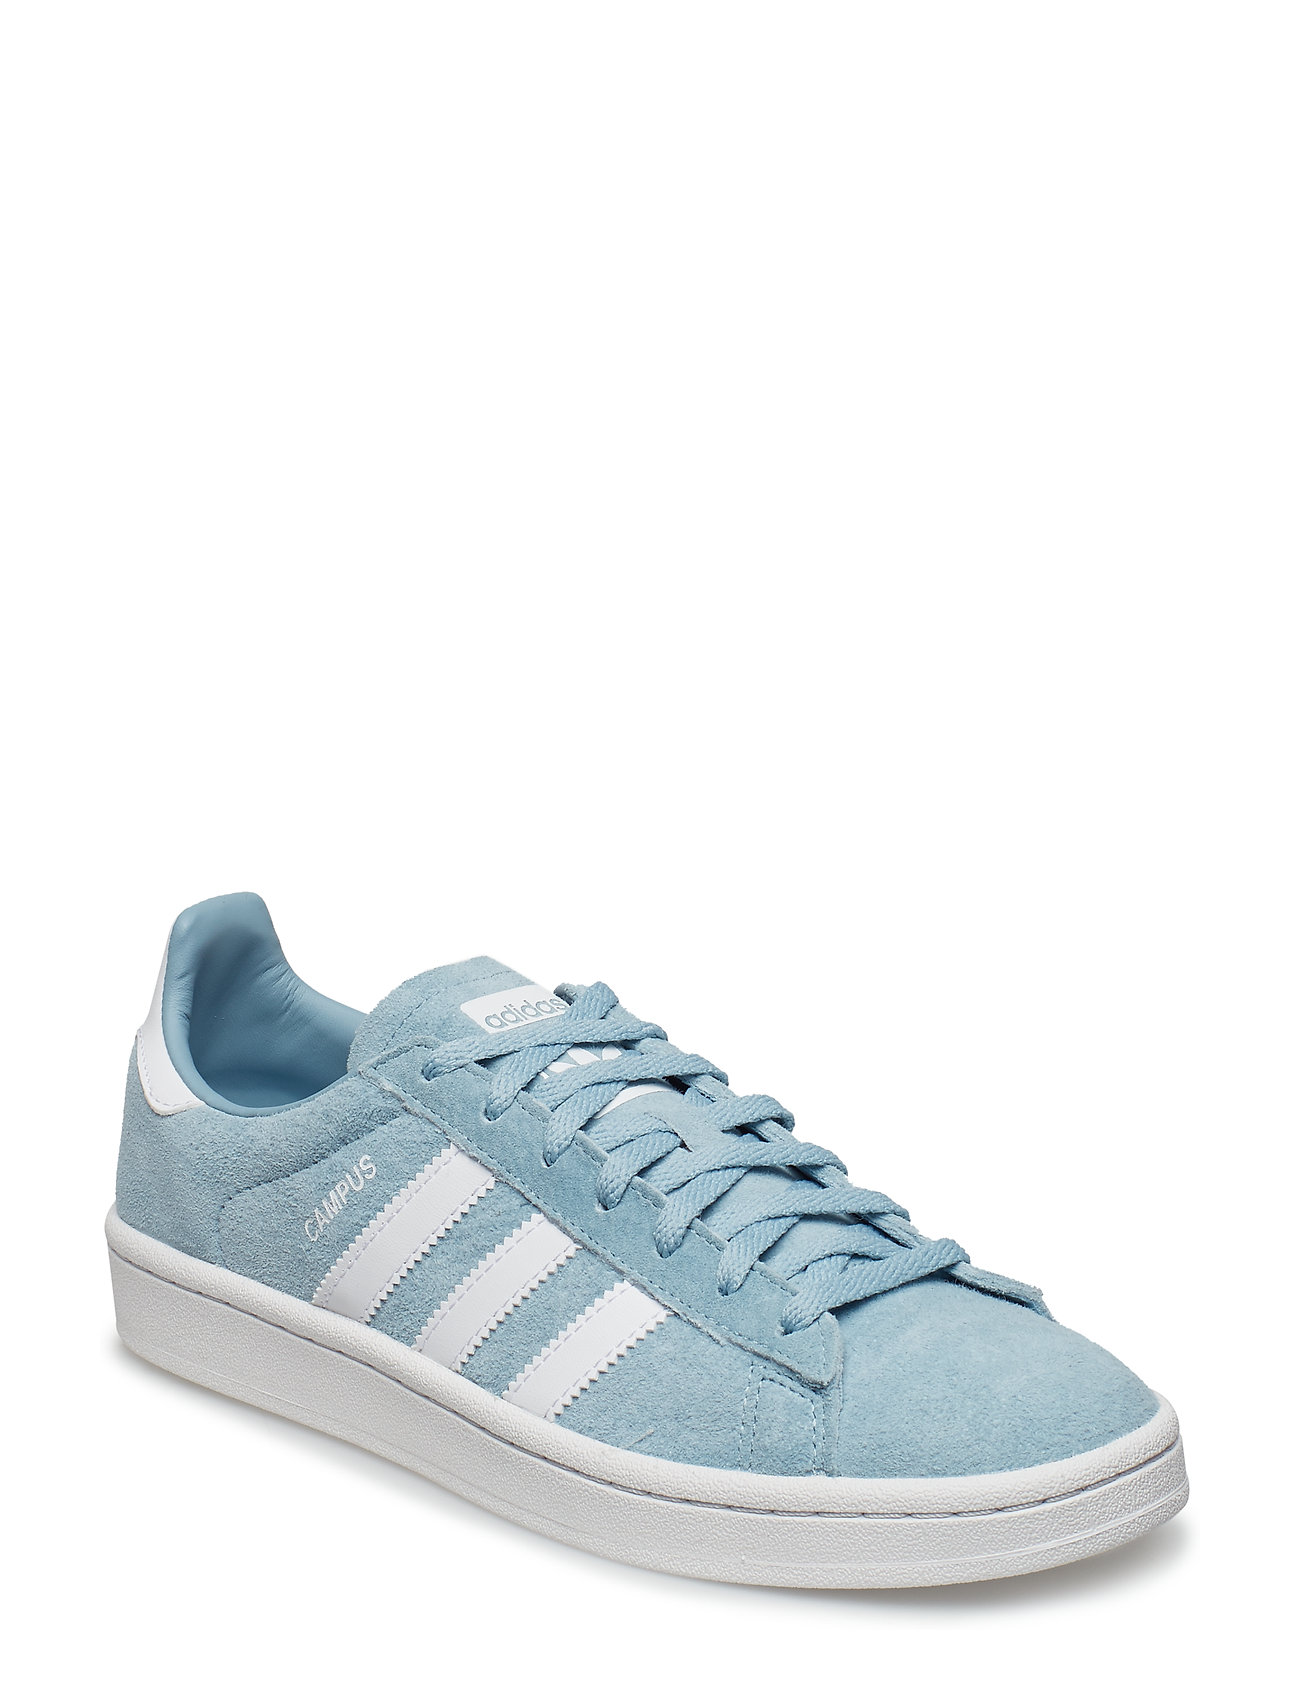 cbabc54c978f CLEORA FTWWHT CRYWHT Adidas Campus W sneakers for dame - Pashion.dk